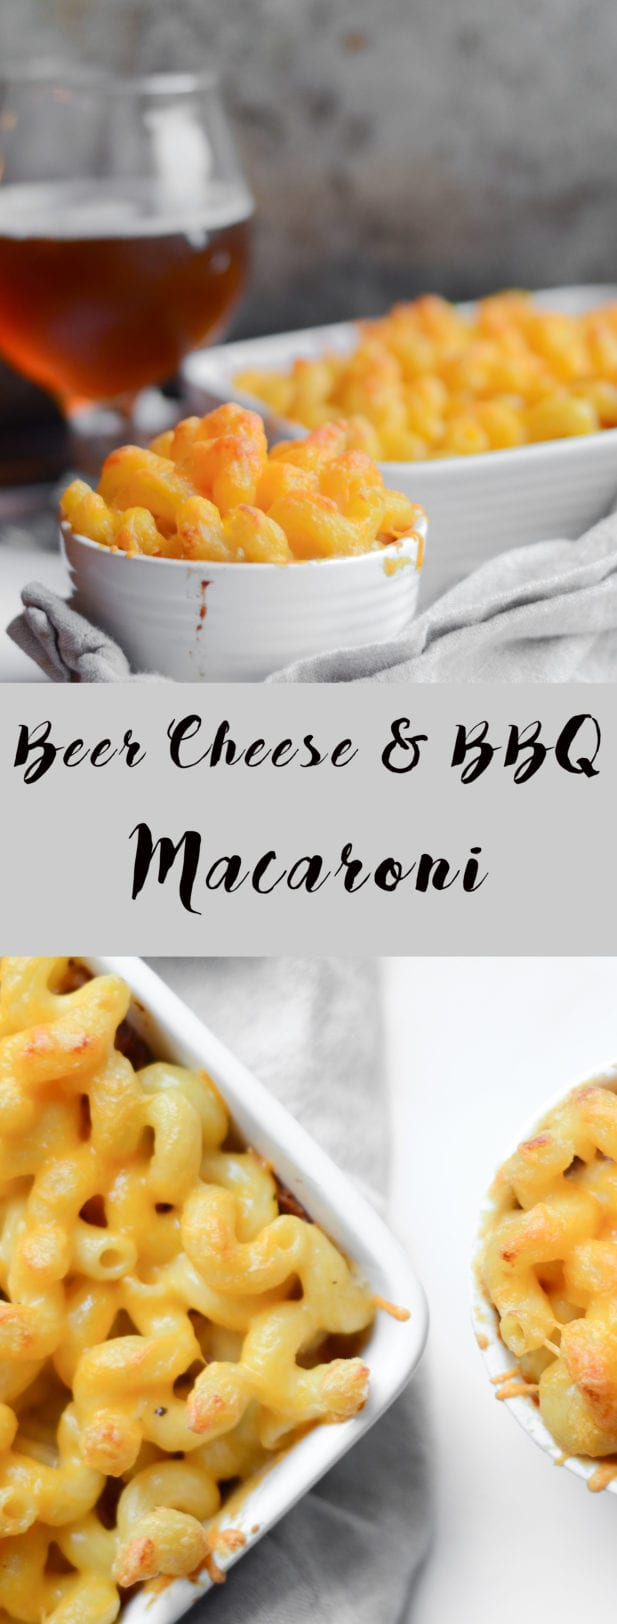 Beer Cheese and BBQ Macaroni